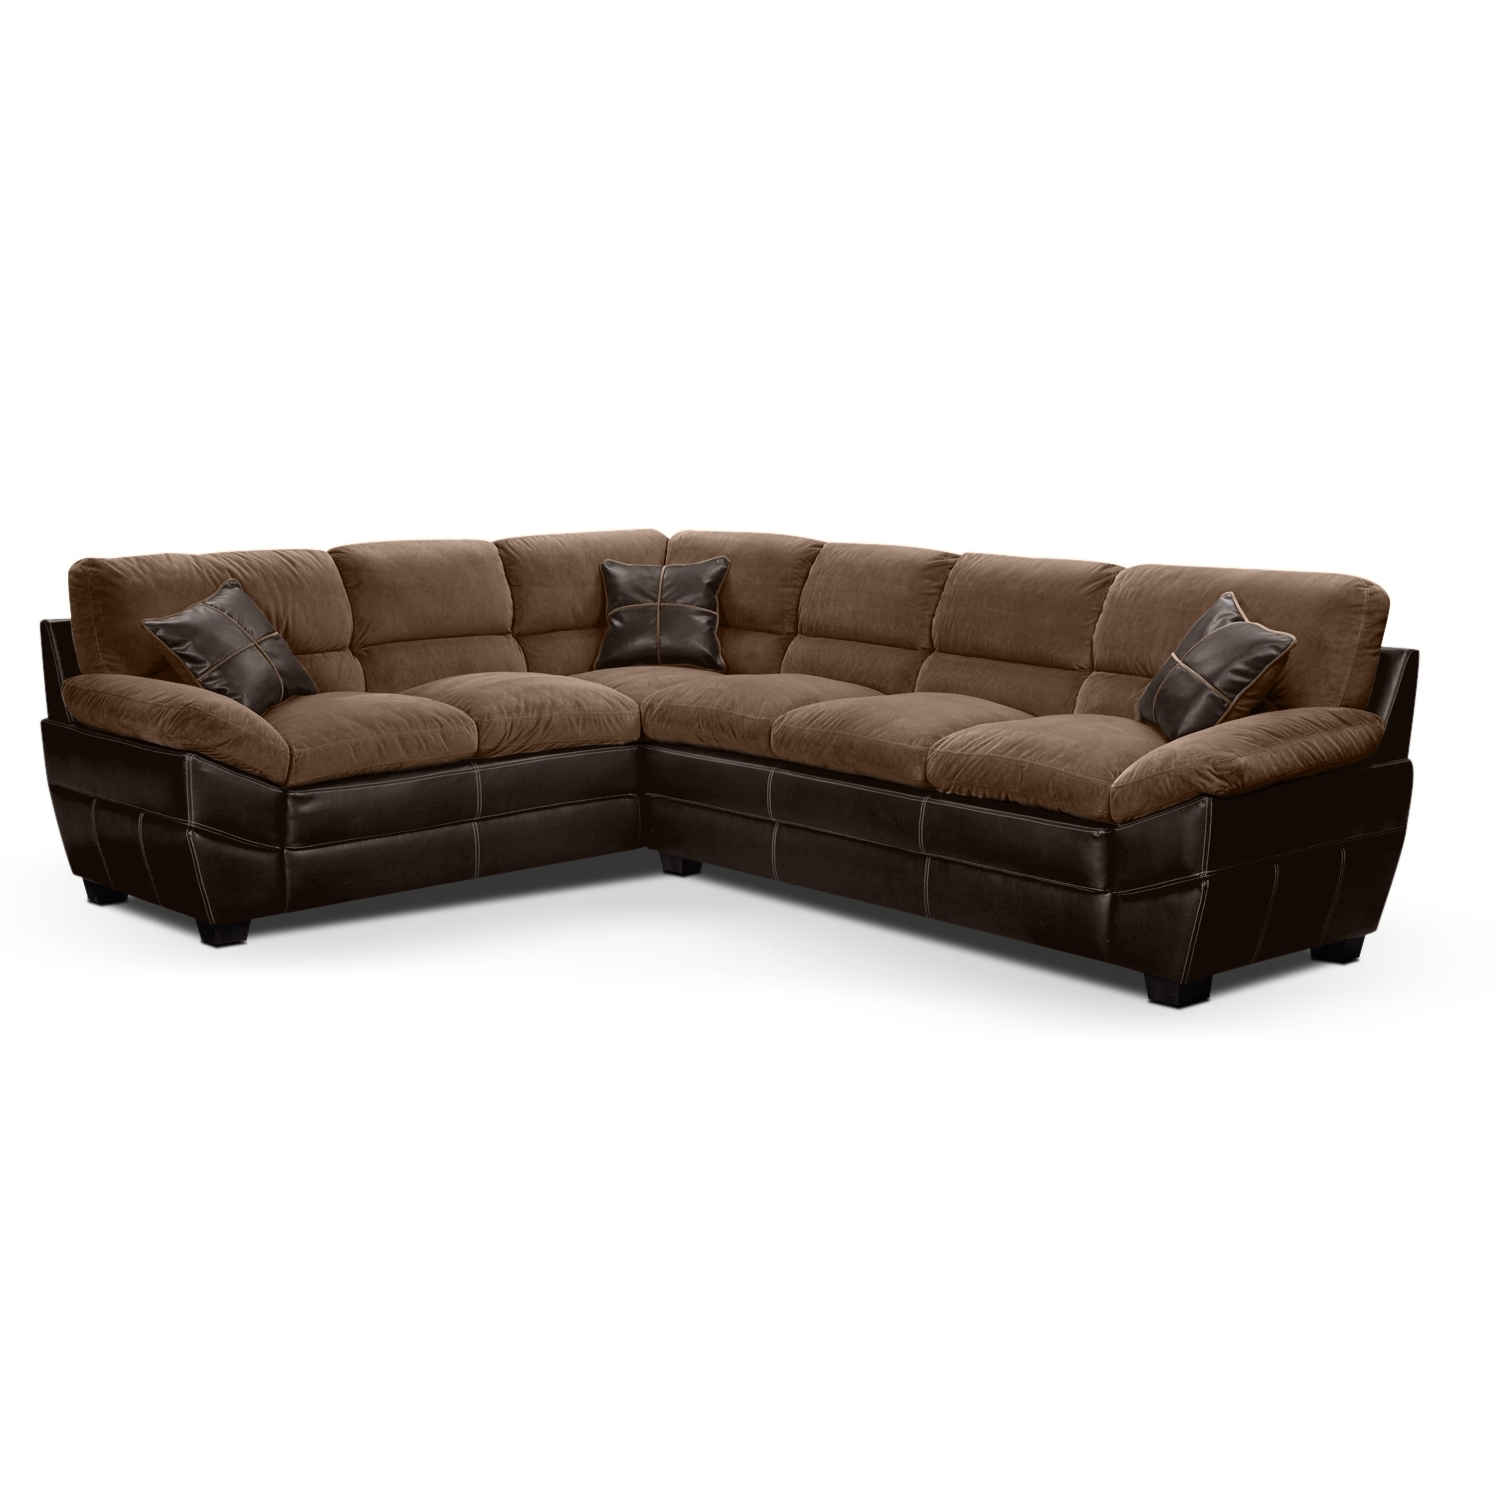 Value City Sectional Sofa With Regard To Best Home Furniture Throughout Most Current Value City Sectional Sofas (View 10 of 20)